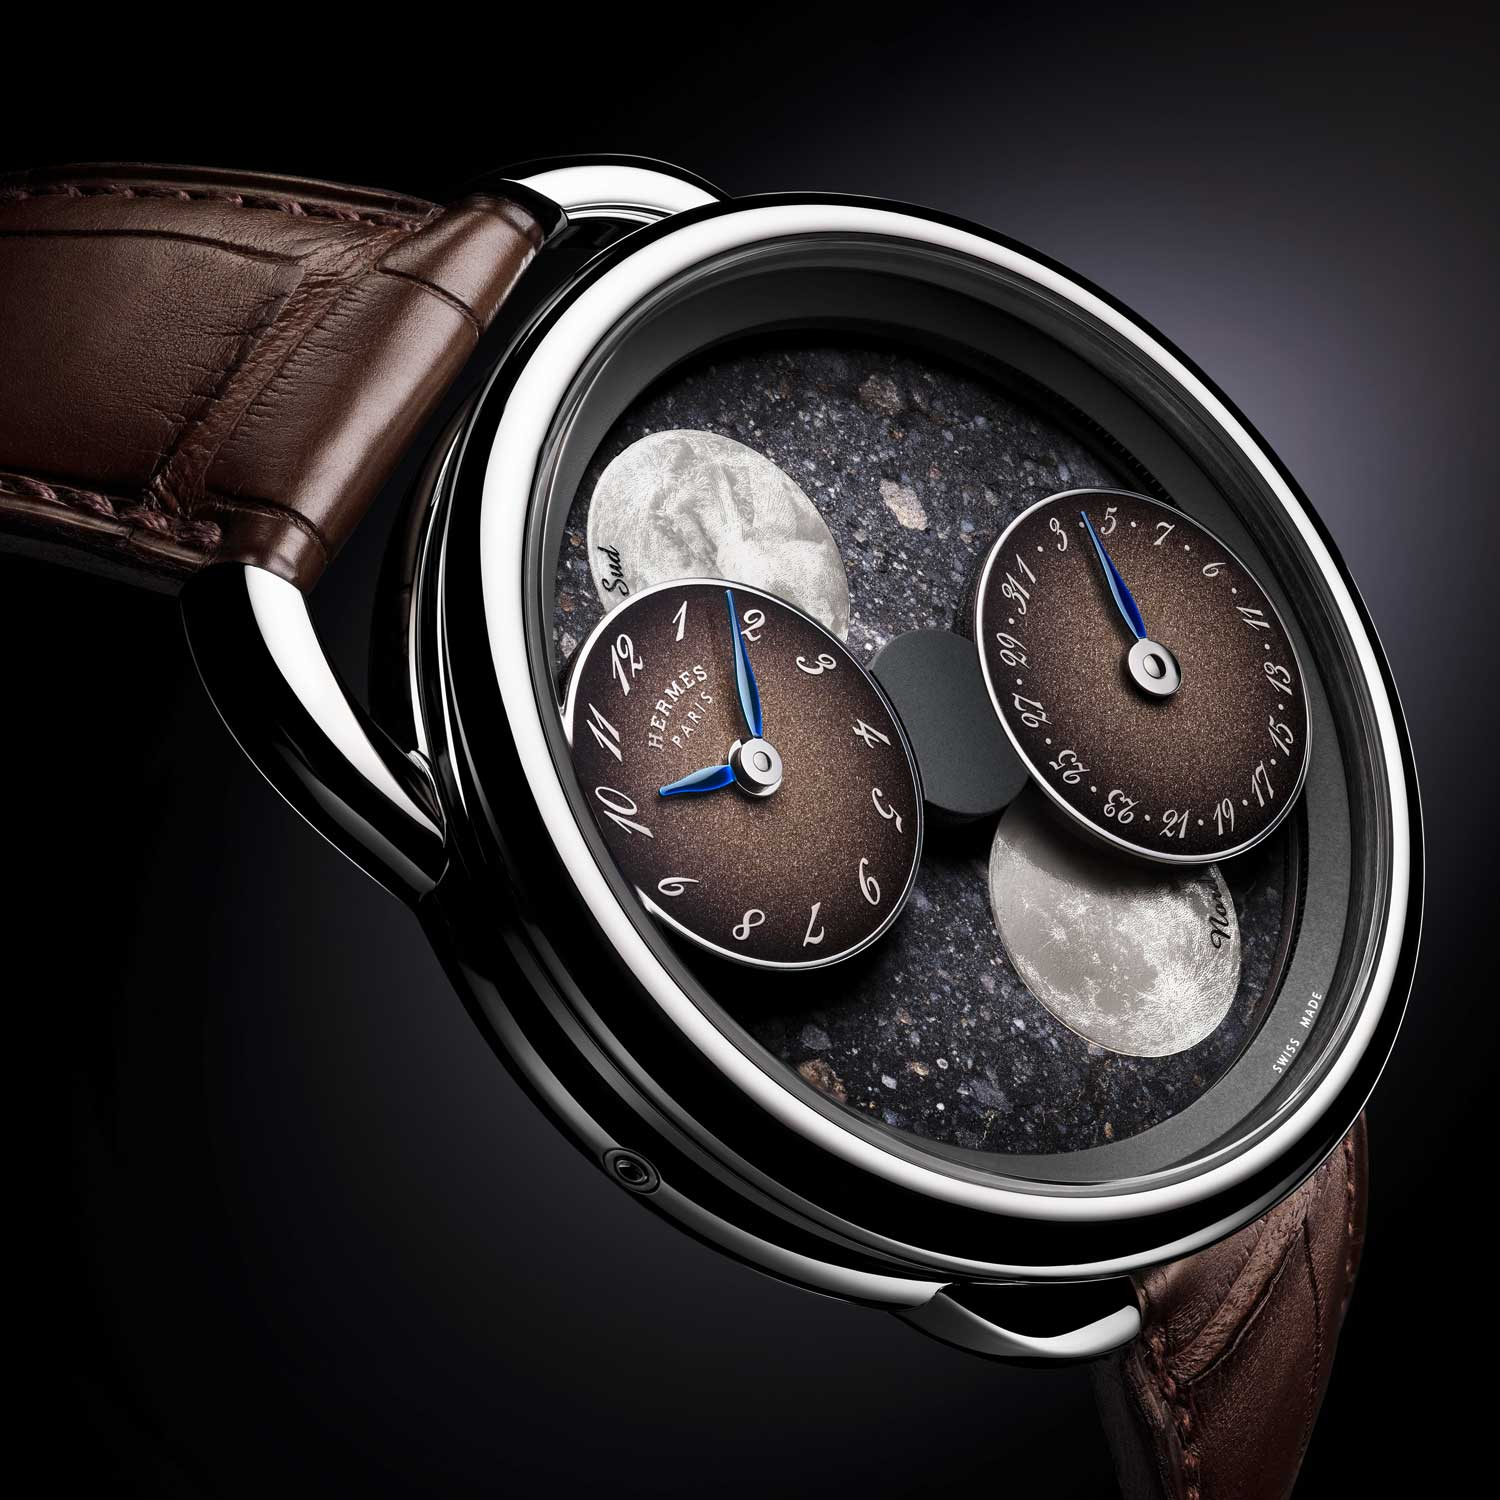 The Hermès Arceau L'Heure de la Lune with Lunar meteorite dial, limited to 36 pieces worldwide.